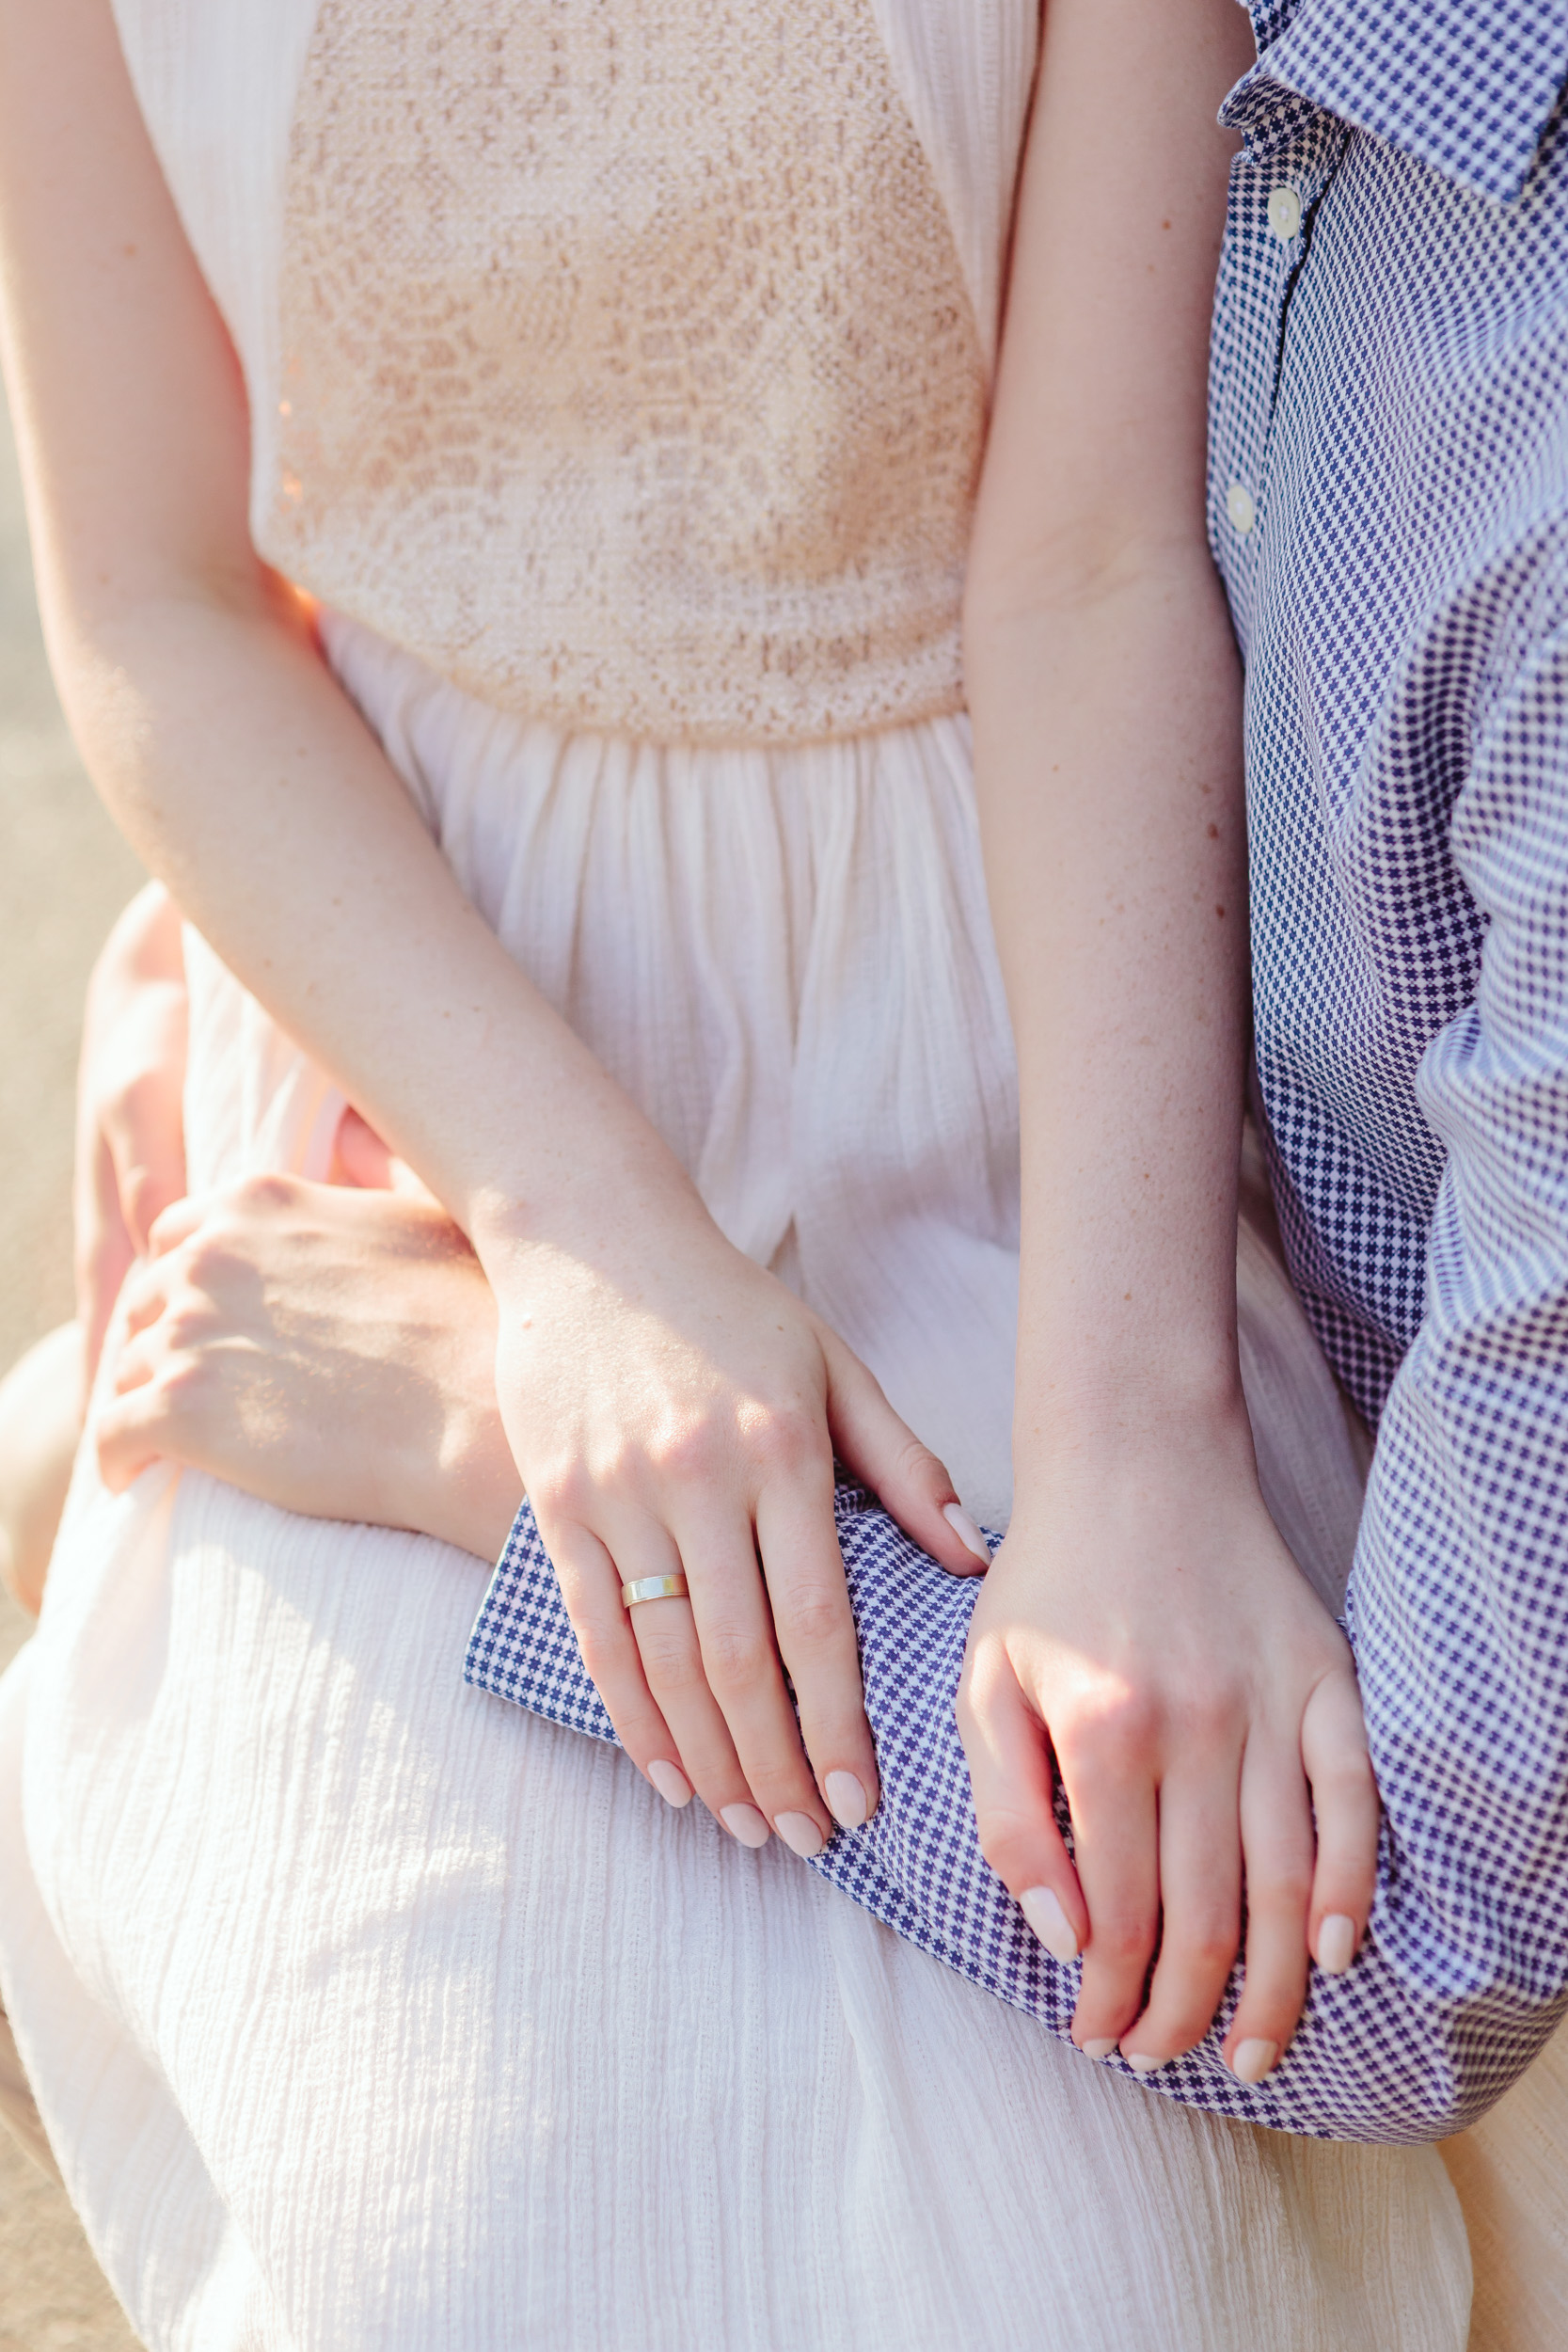 Couple in love details - gently holding hands captured by Paris Photographer Federico Guendel IheartParisFr